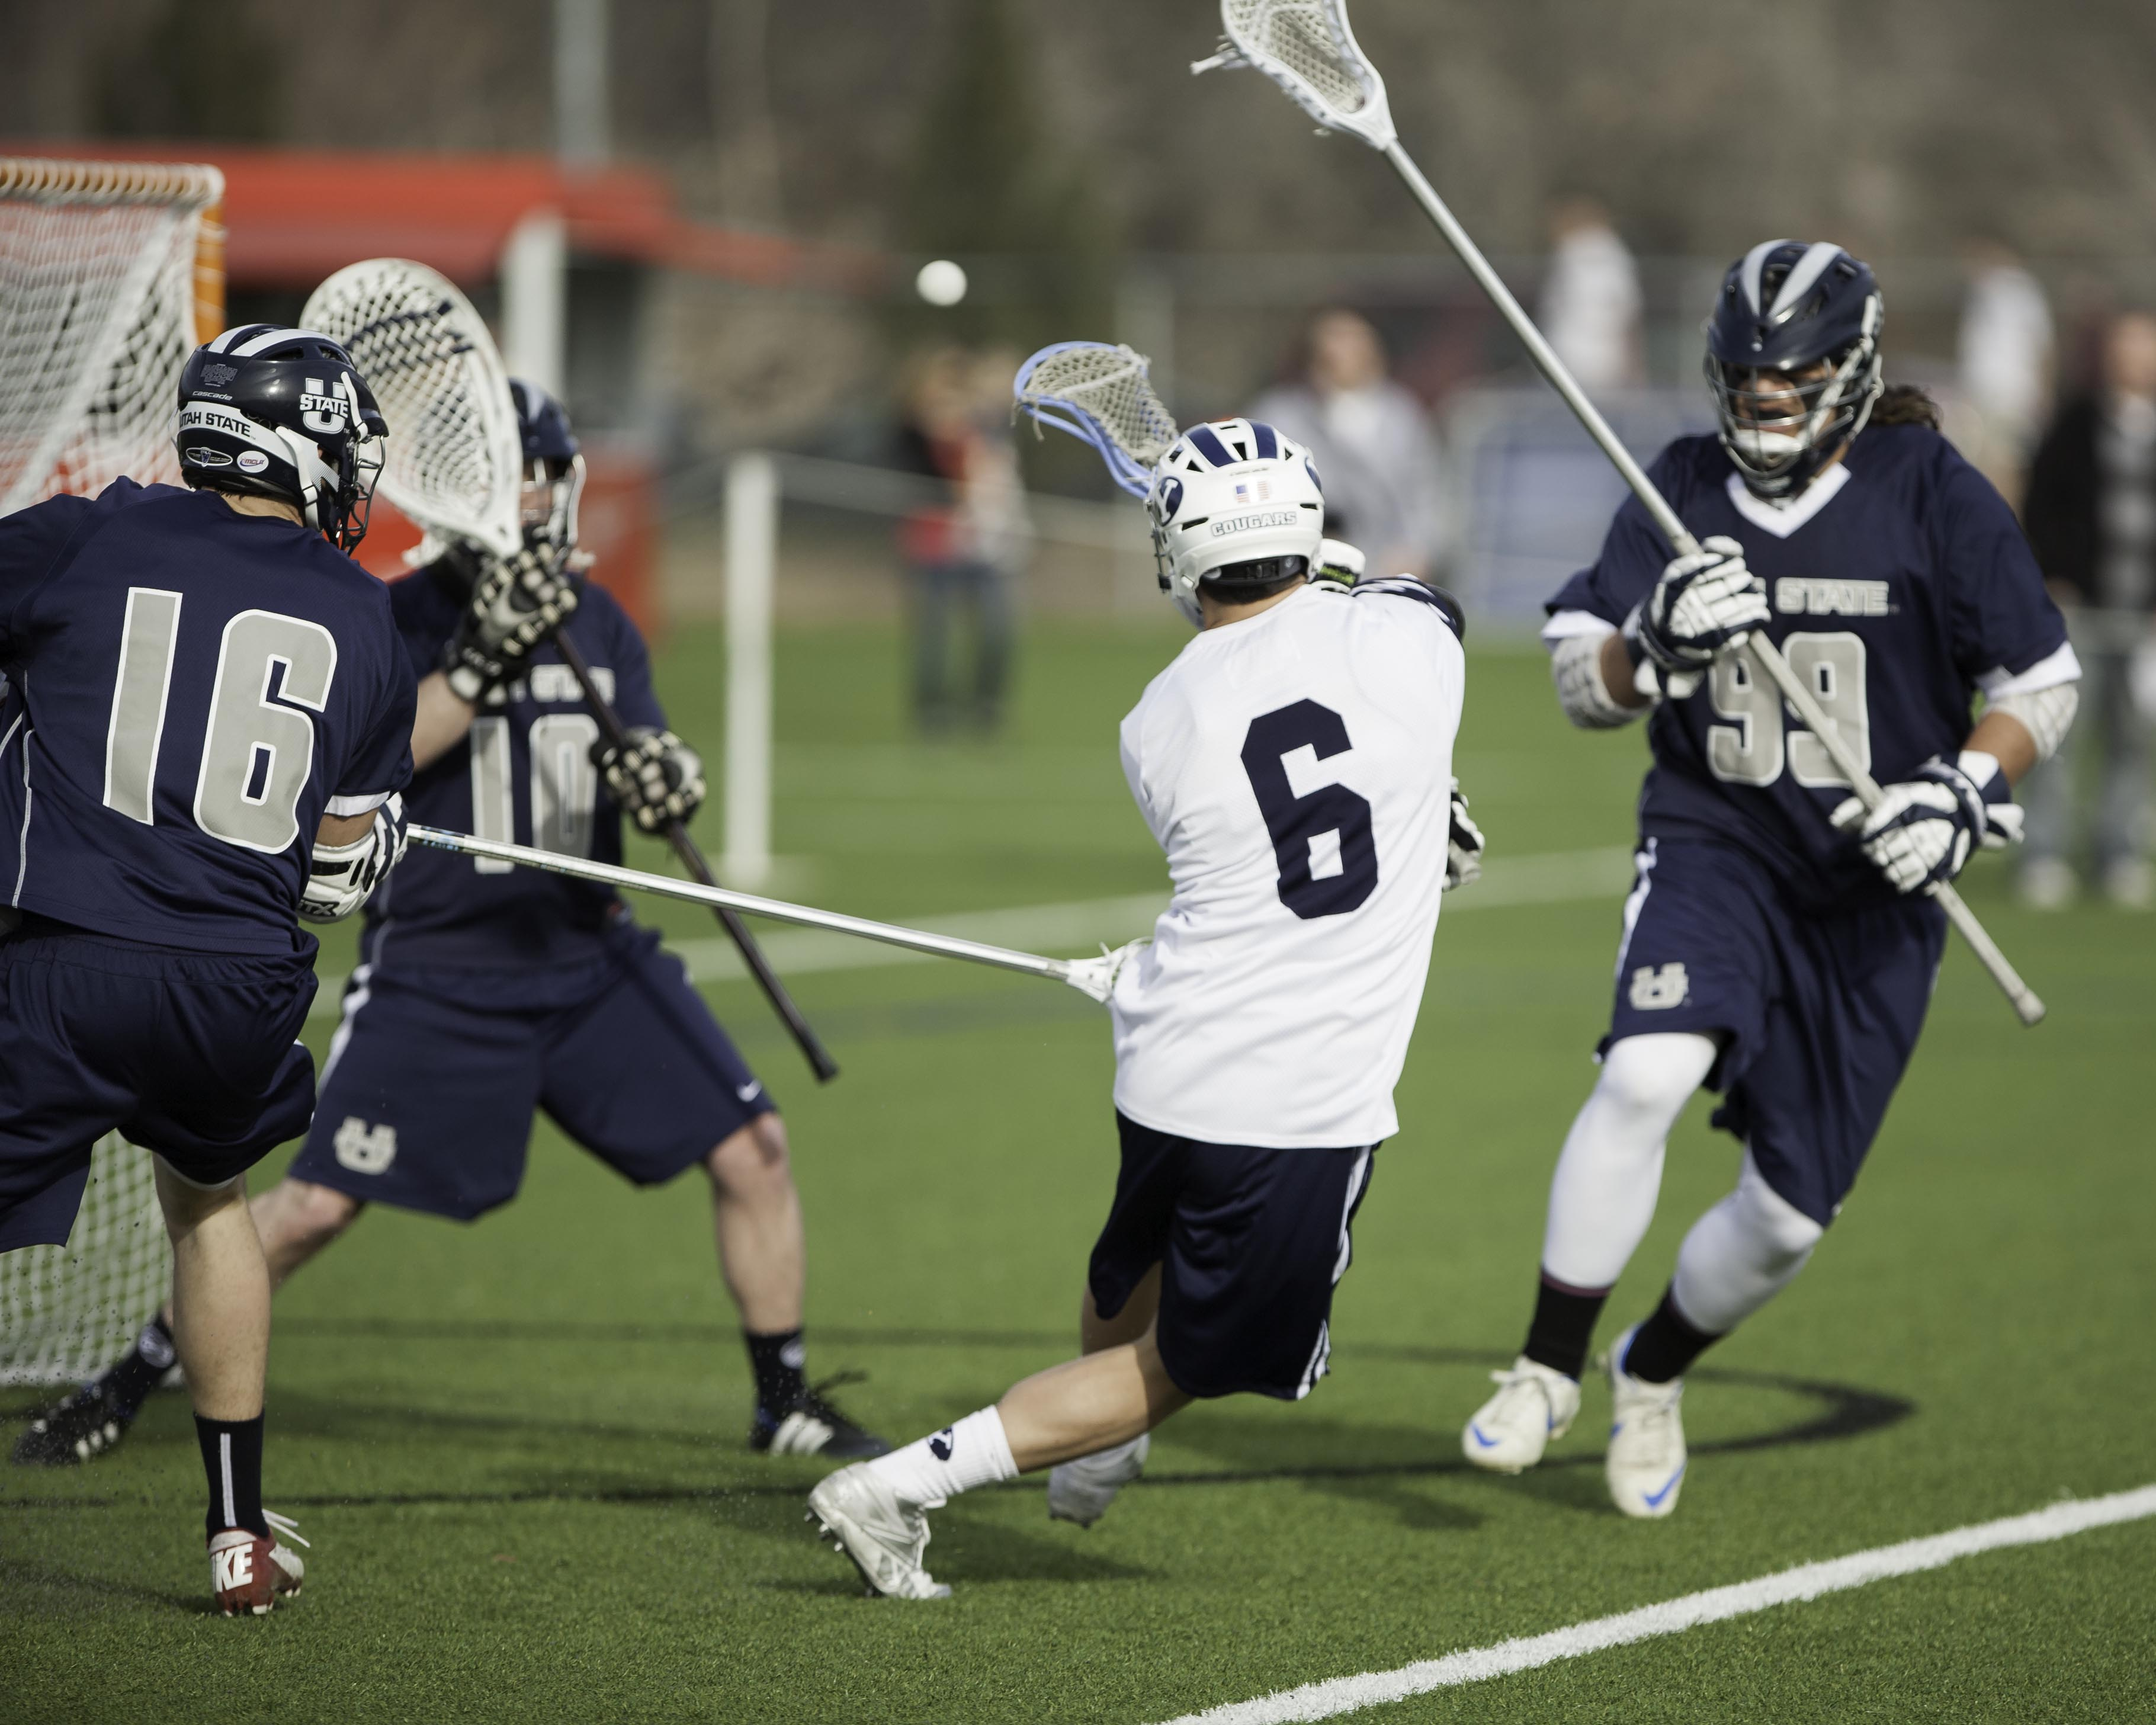 BYU's Mike Fabrizio takes a shot in a game this season. (Photo by Elliott Miller)